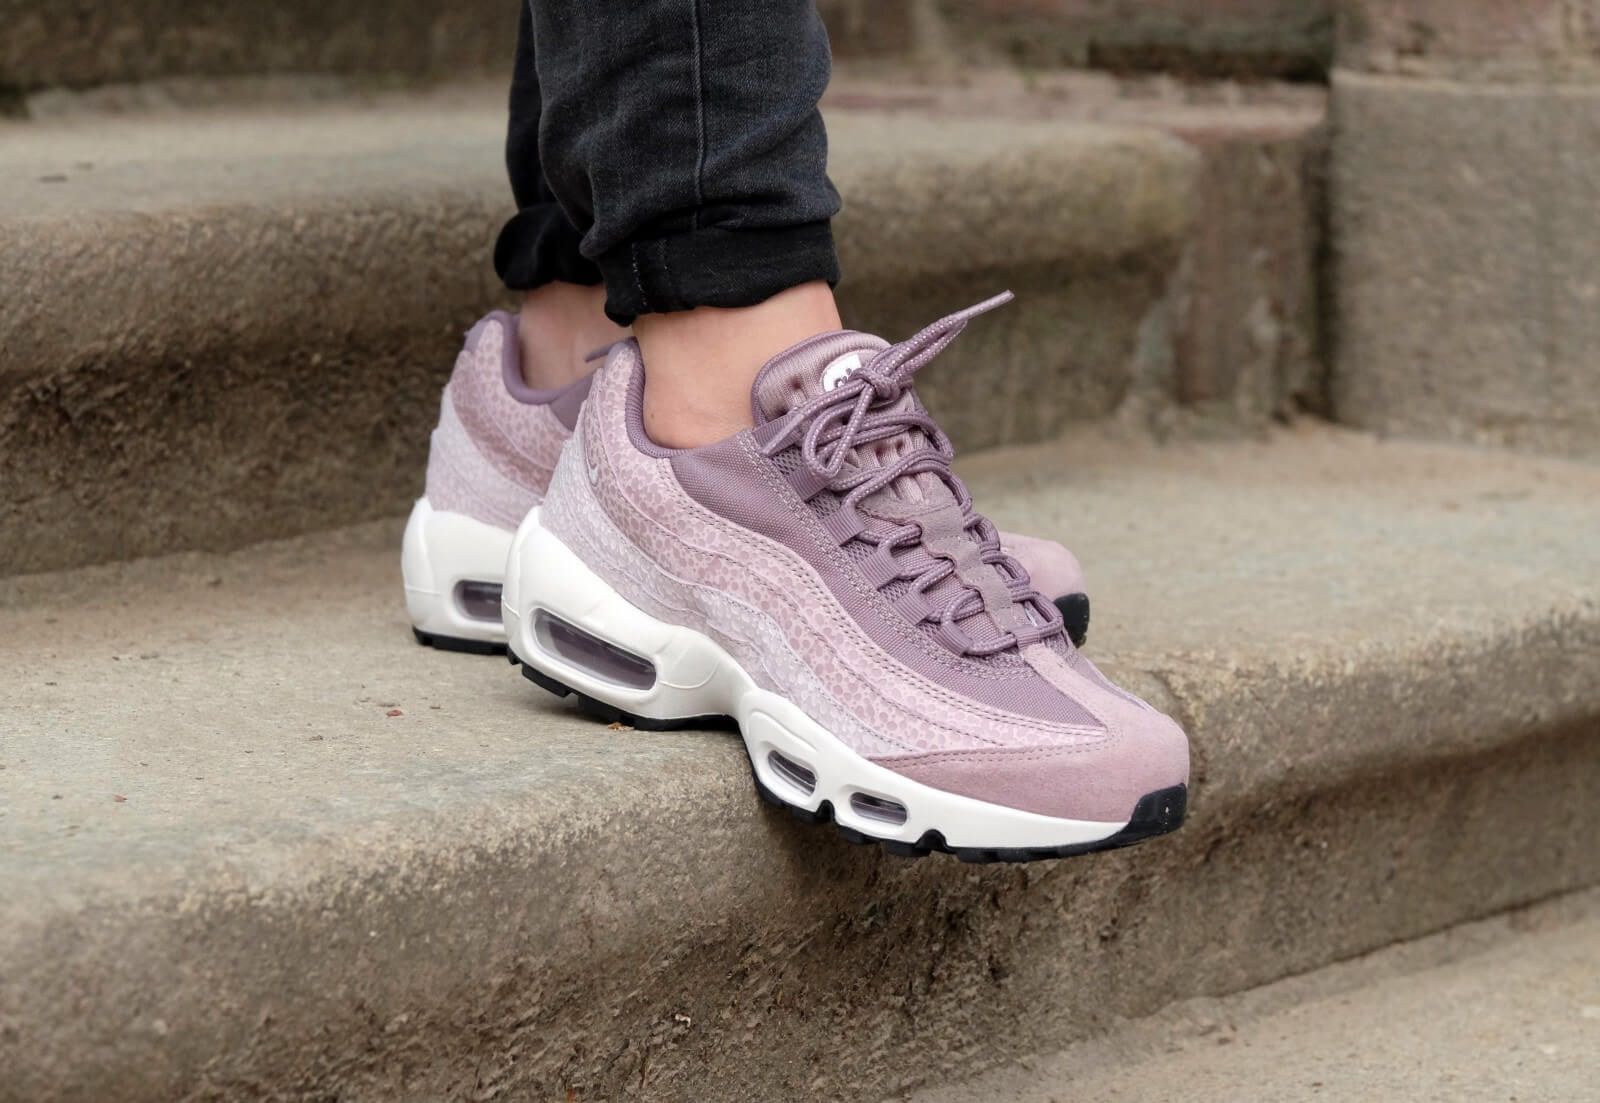 new style 1ea67 aab09 Nike WMNS Air Max 95 PRM Purple Smoke Summit White-Light Violet - 807443-502